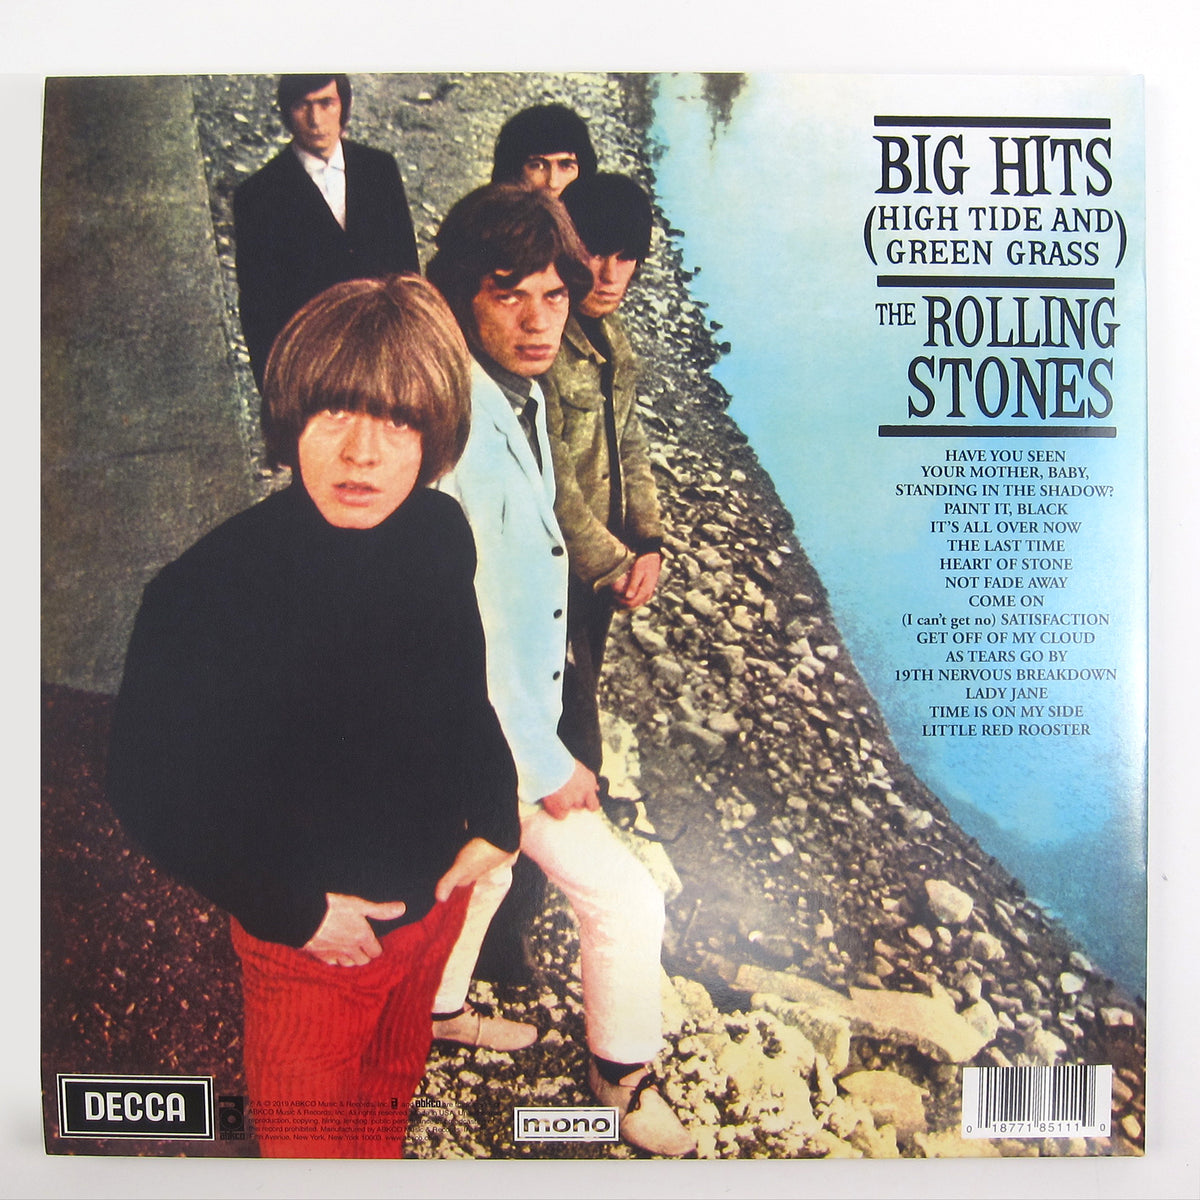 The Rolling Stones: Big Hits - High Tides And Green Grass (180g, Colored Vinyl) Vinyl LP (Record Store Day)